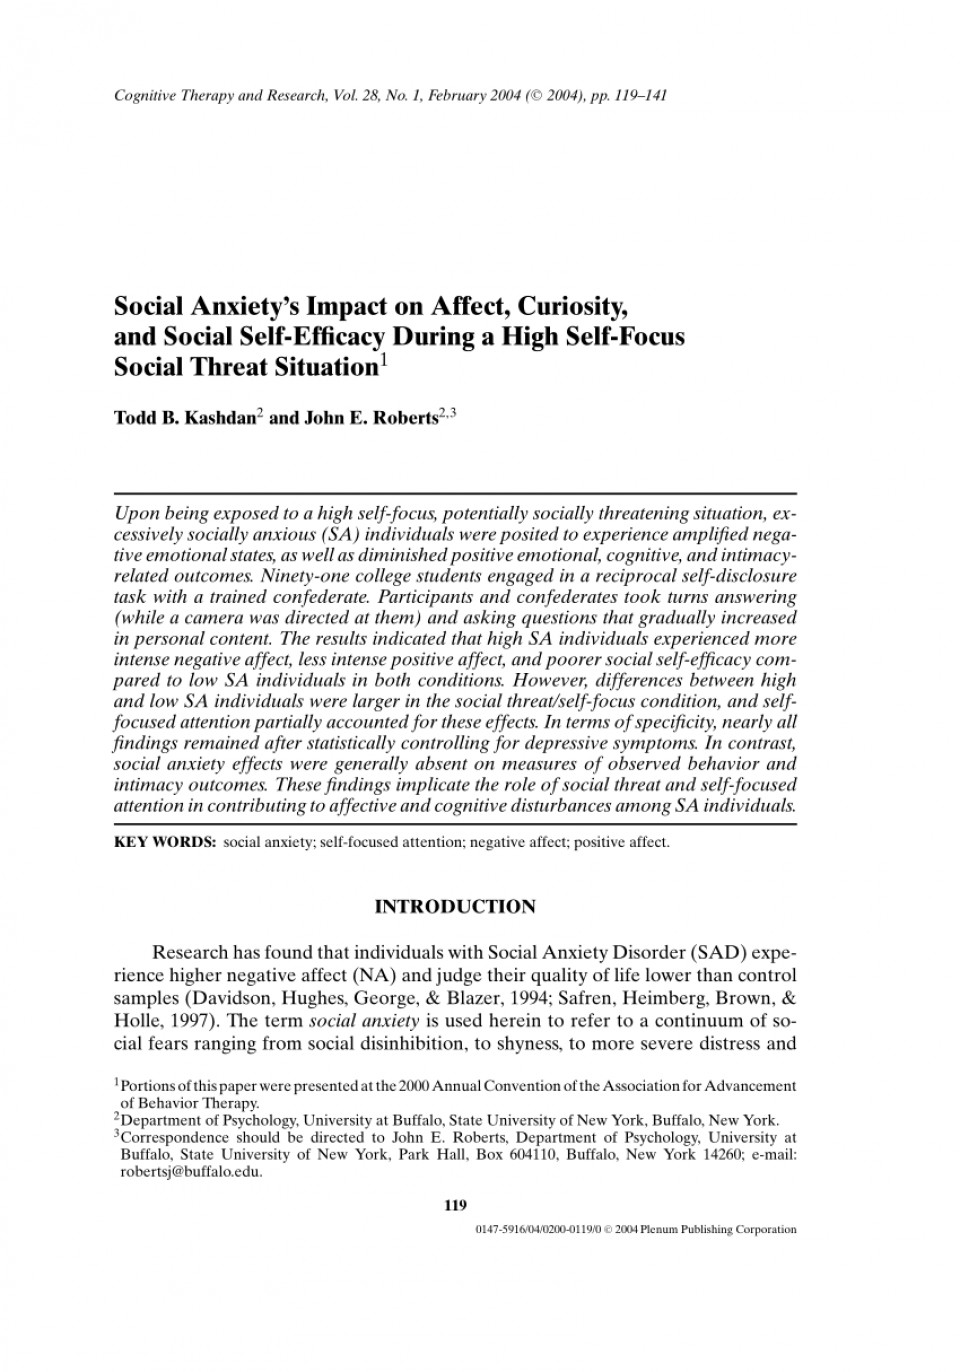 005 Research Paper Psychology On Social Anxiety Disorder Staggering 960